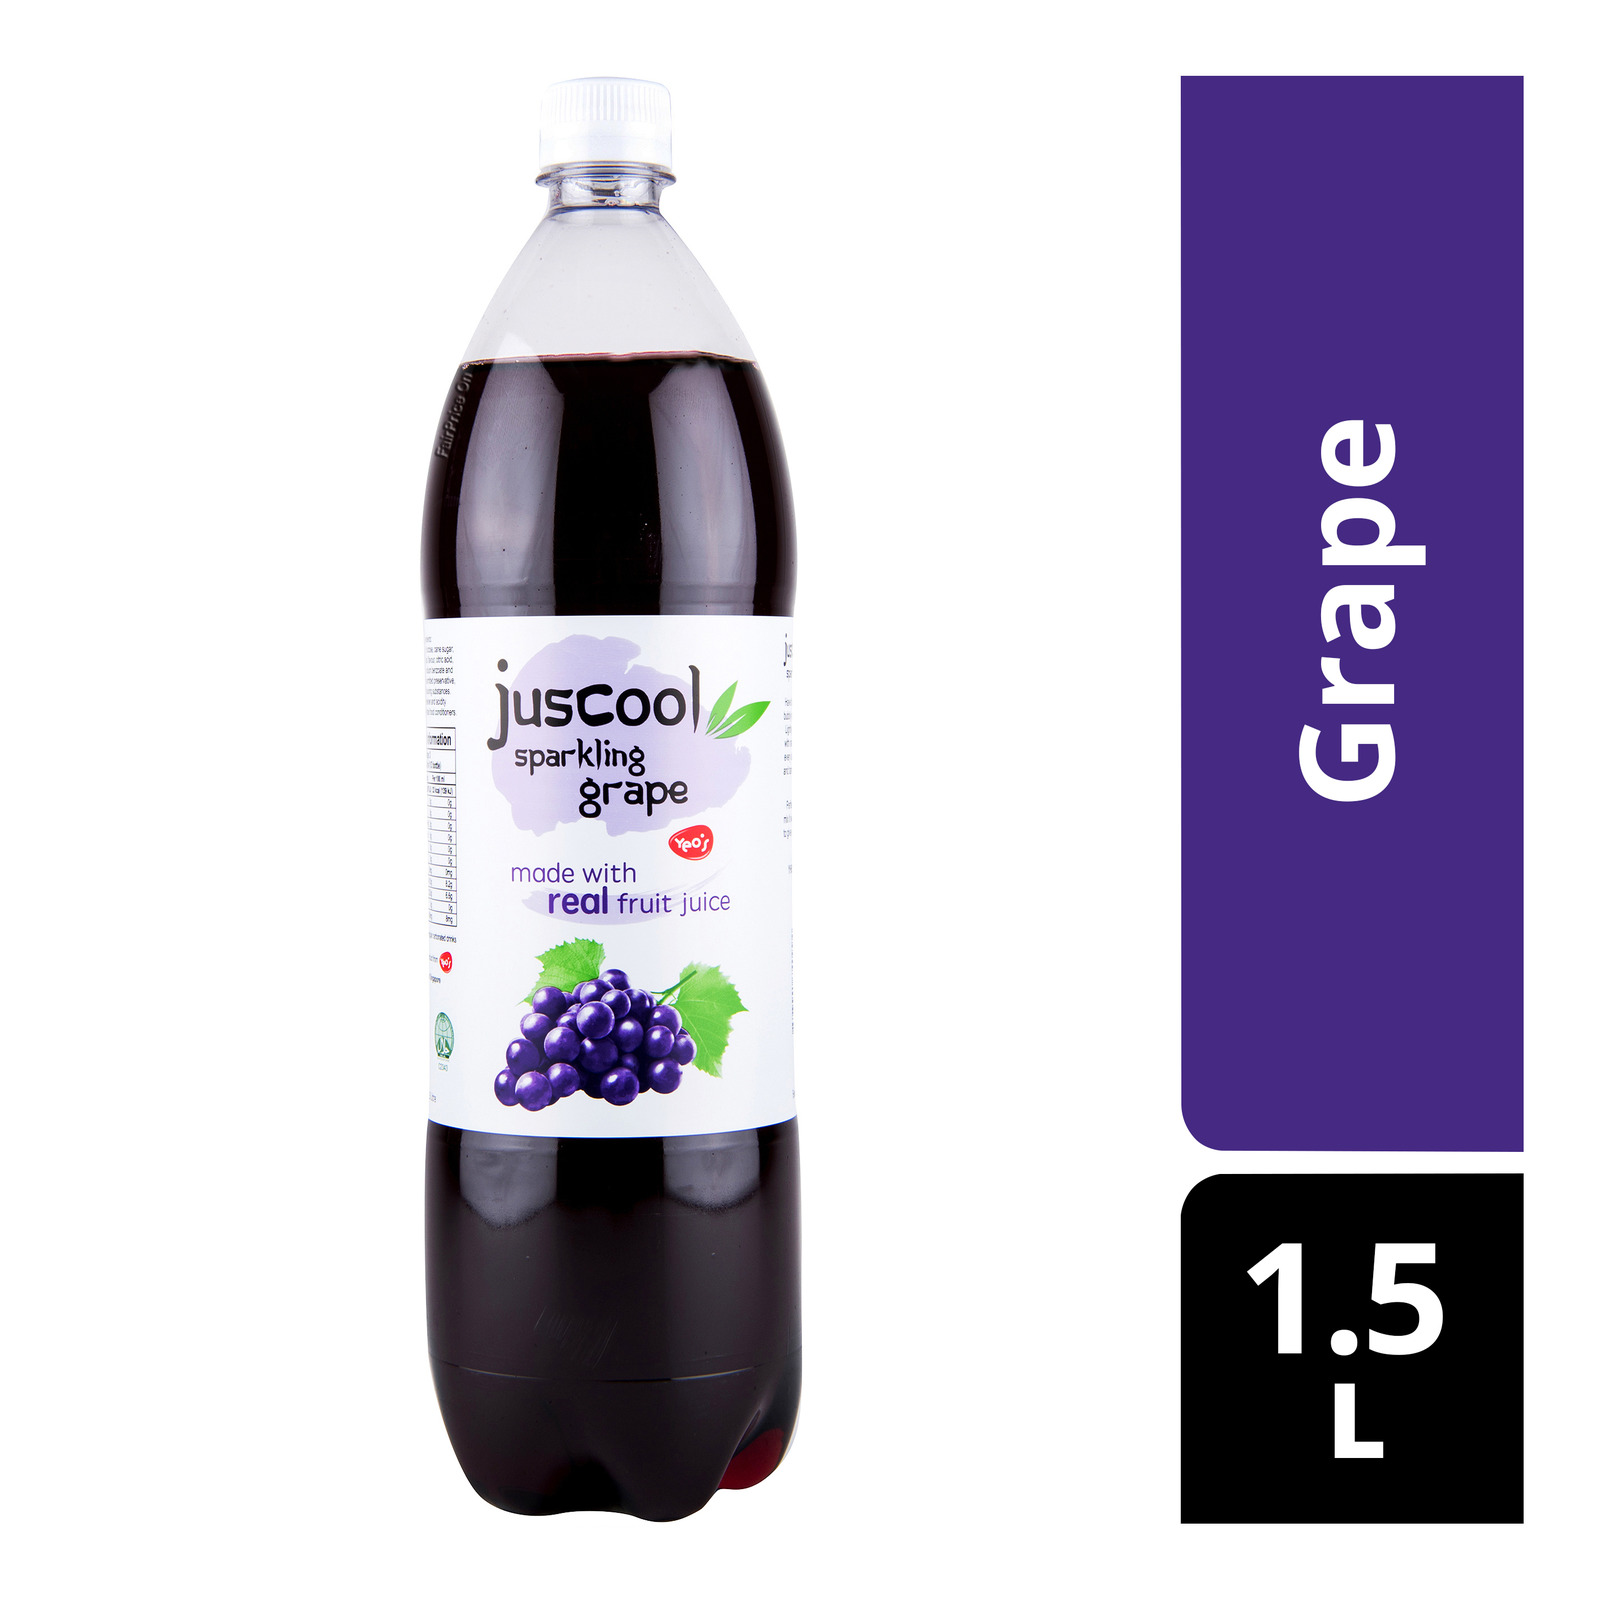 Juscool Sparkling Bottle Drink - Grape